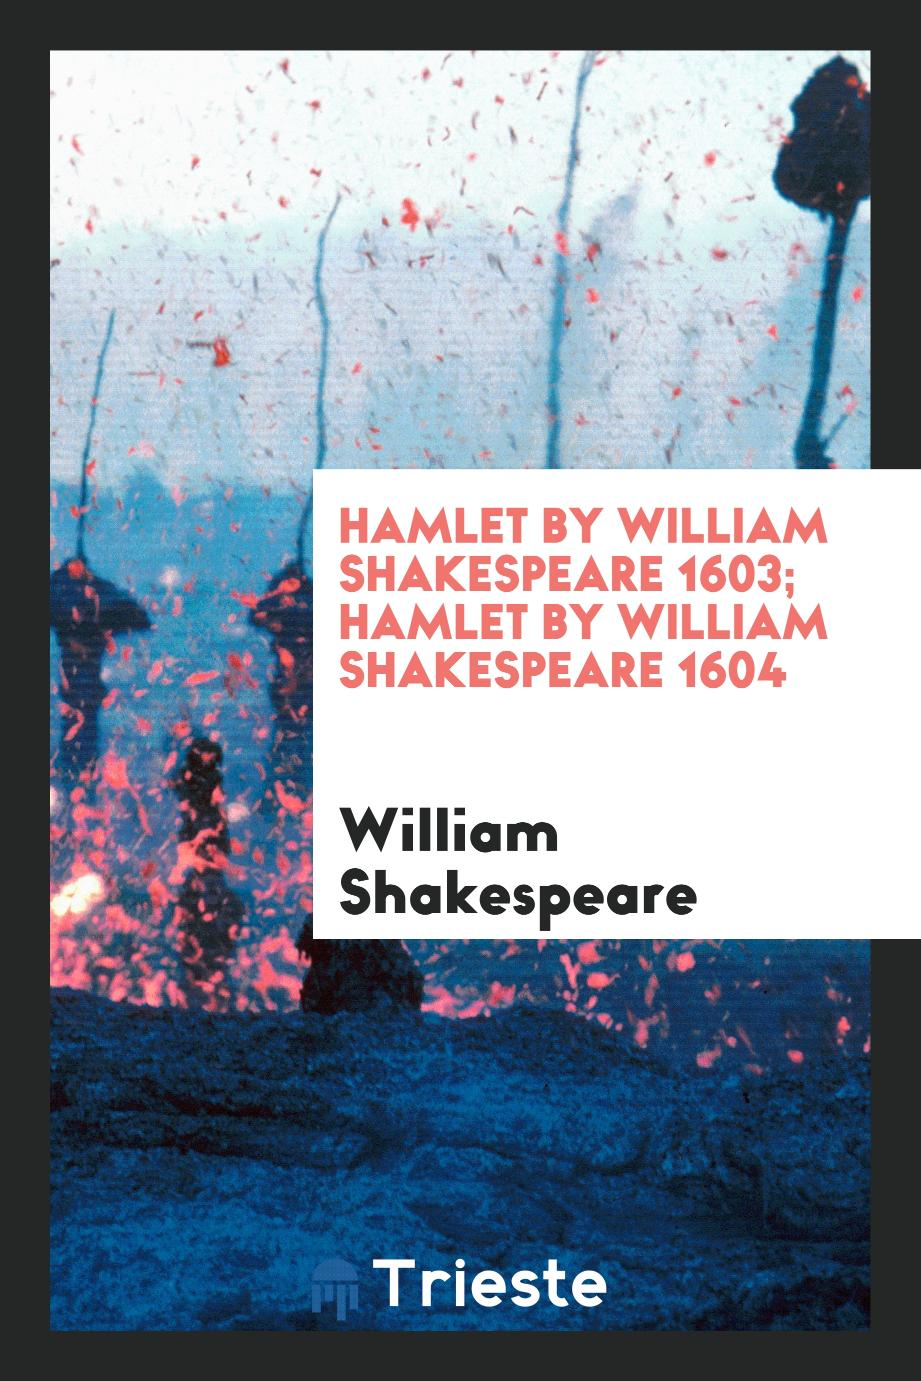 Hamlet by William Shakespeare 1603; Hamlet by William Shakespeare 1604